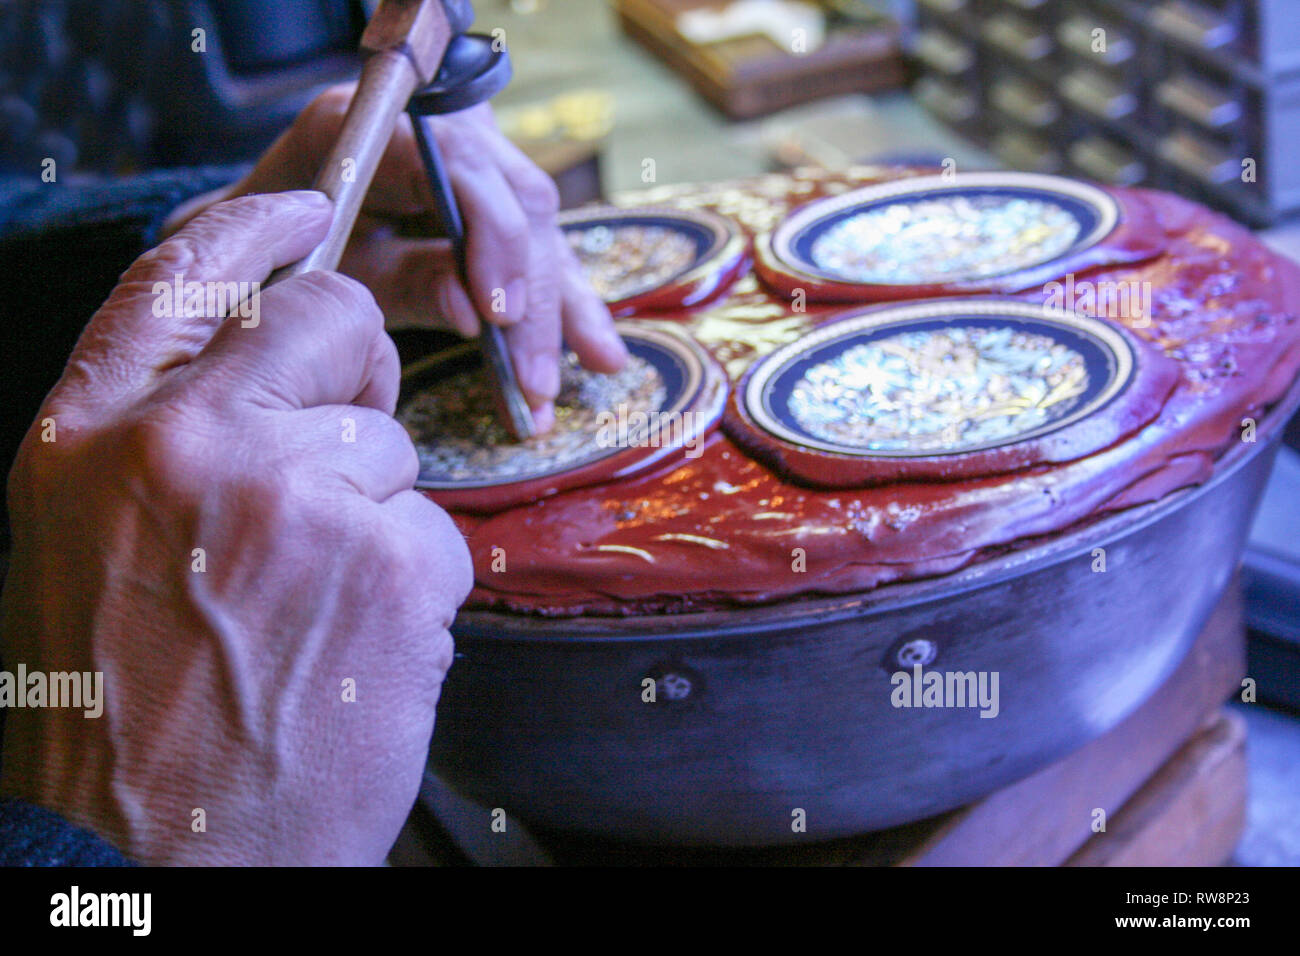 At Toledo - Spain - On february - 2010 - spanish goldsmith engraving jewelry - Stock Image